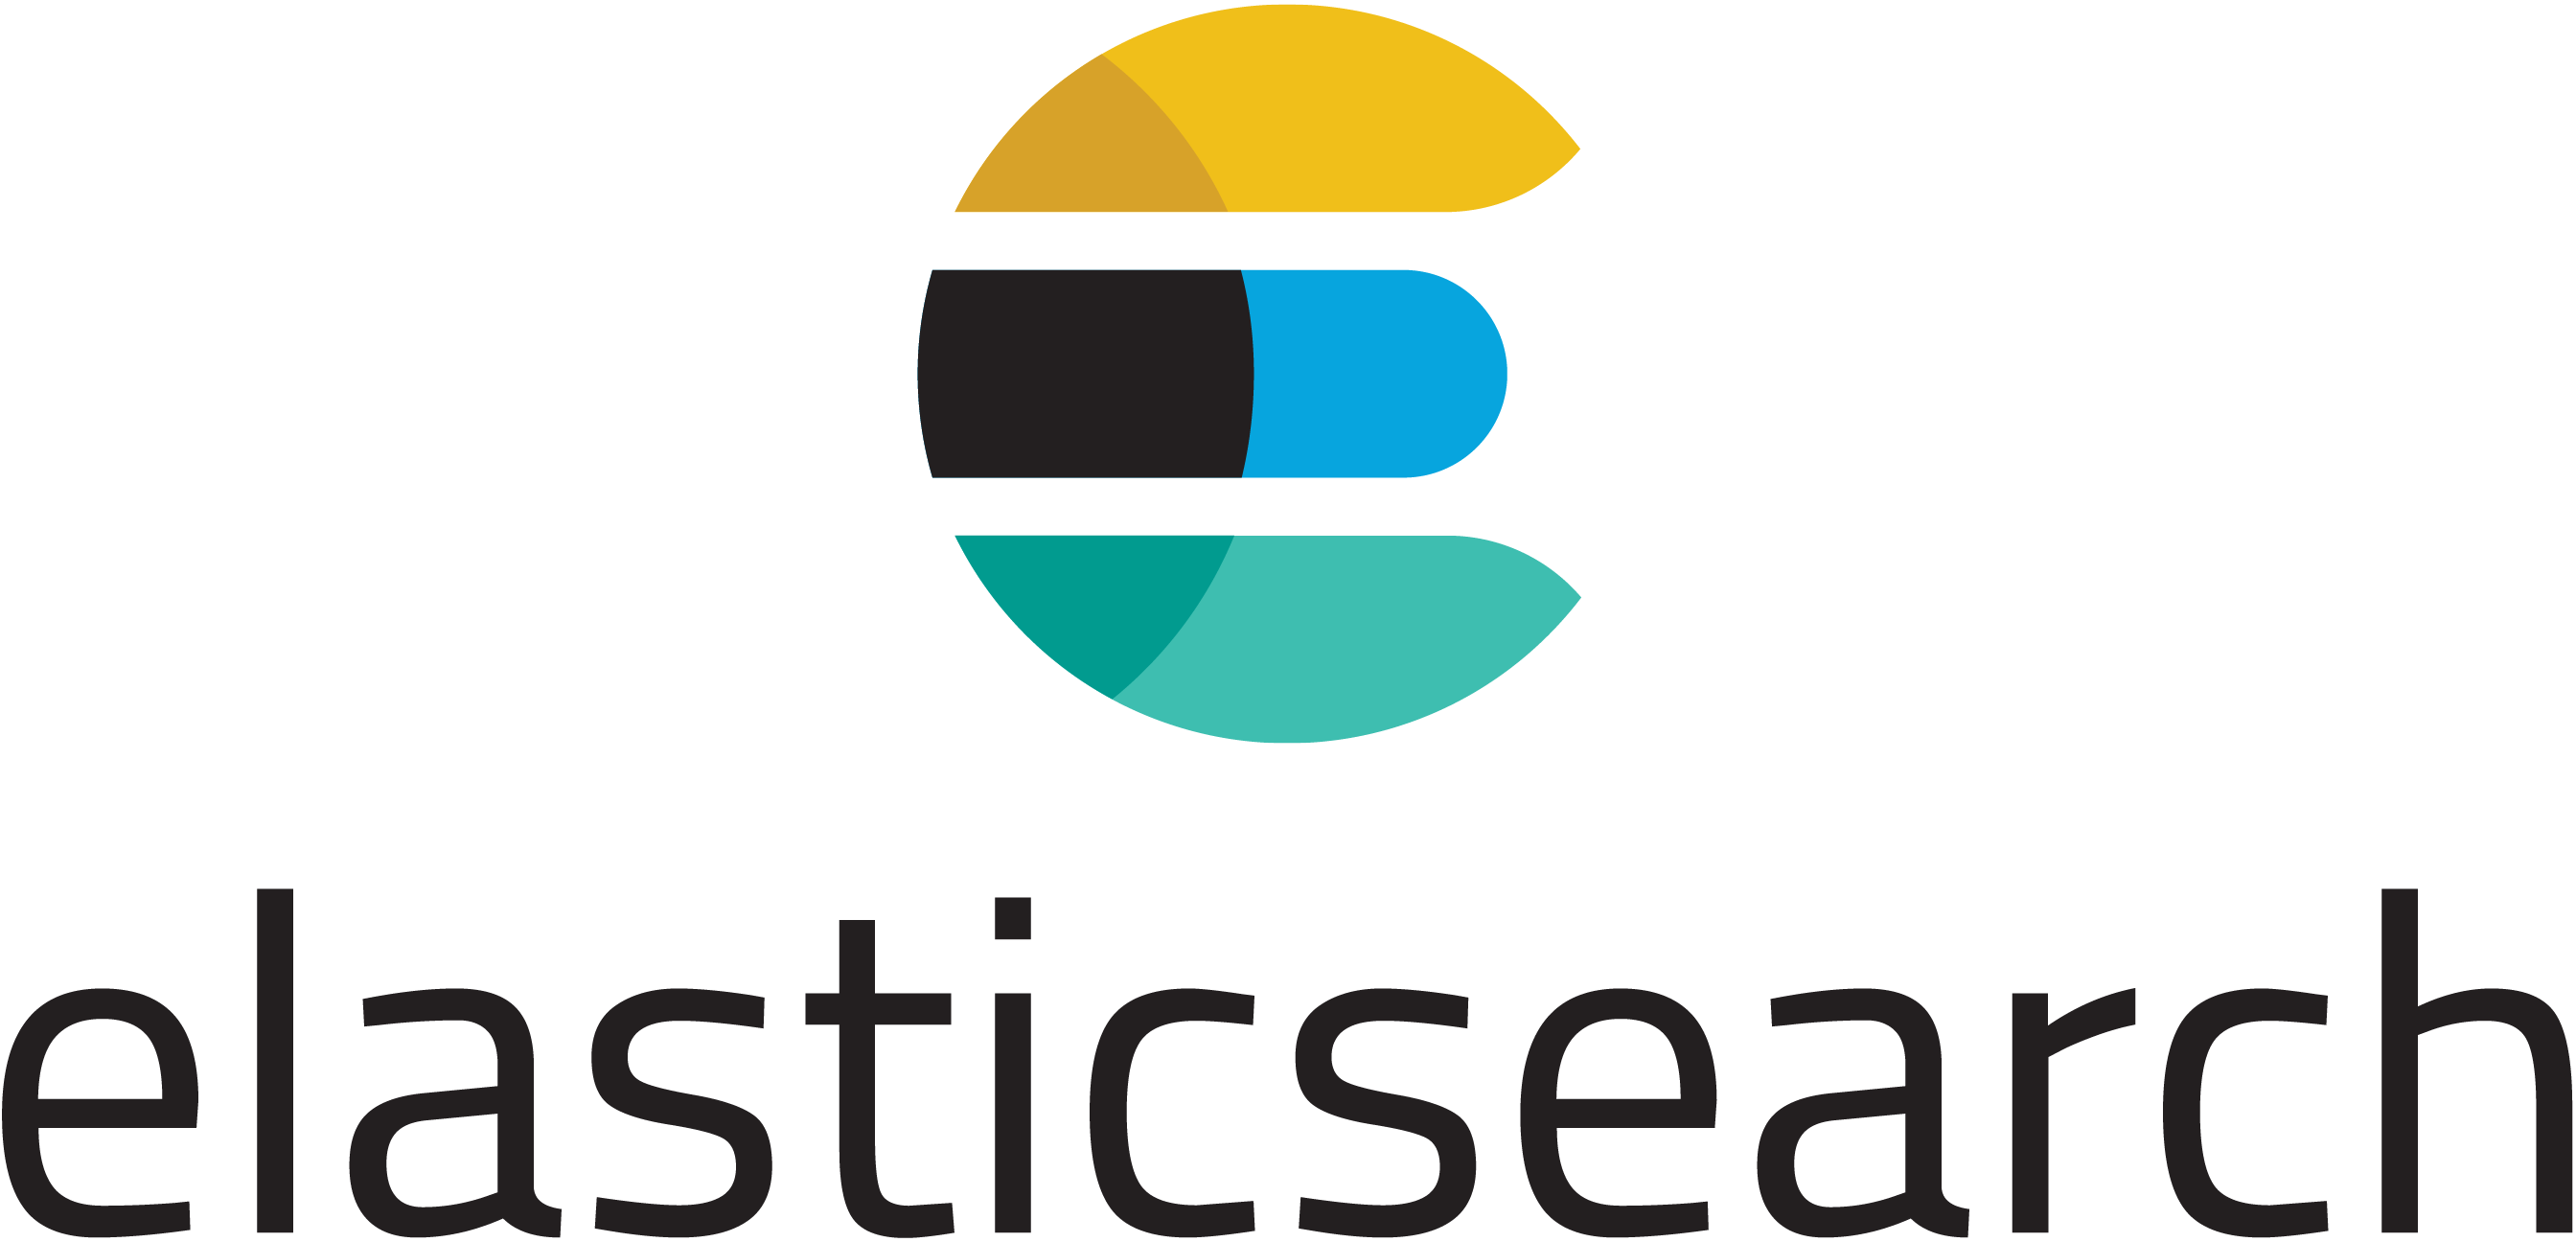 App development with ElasticSearch